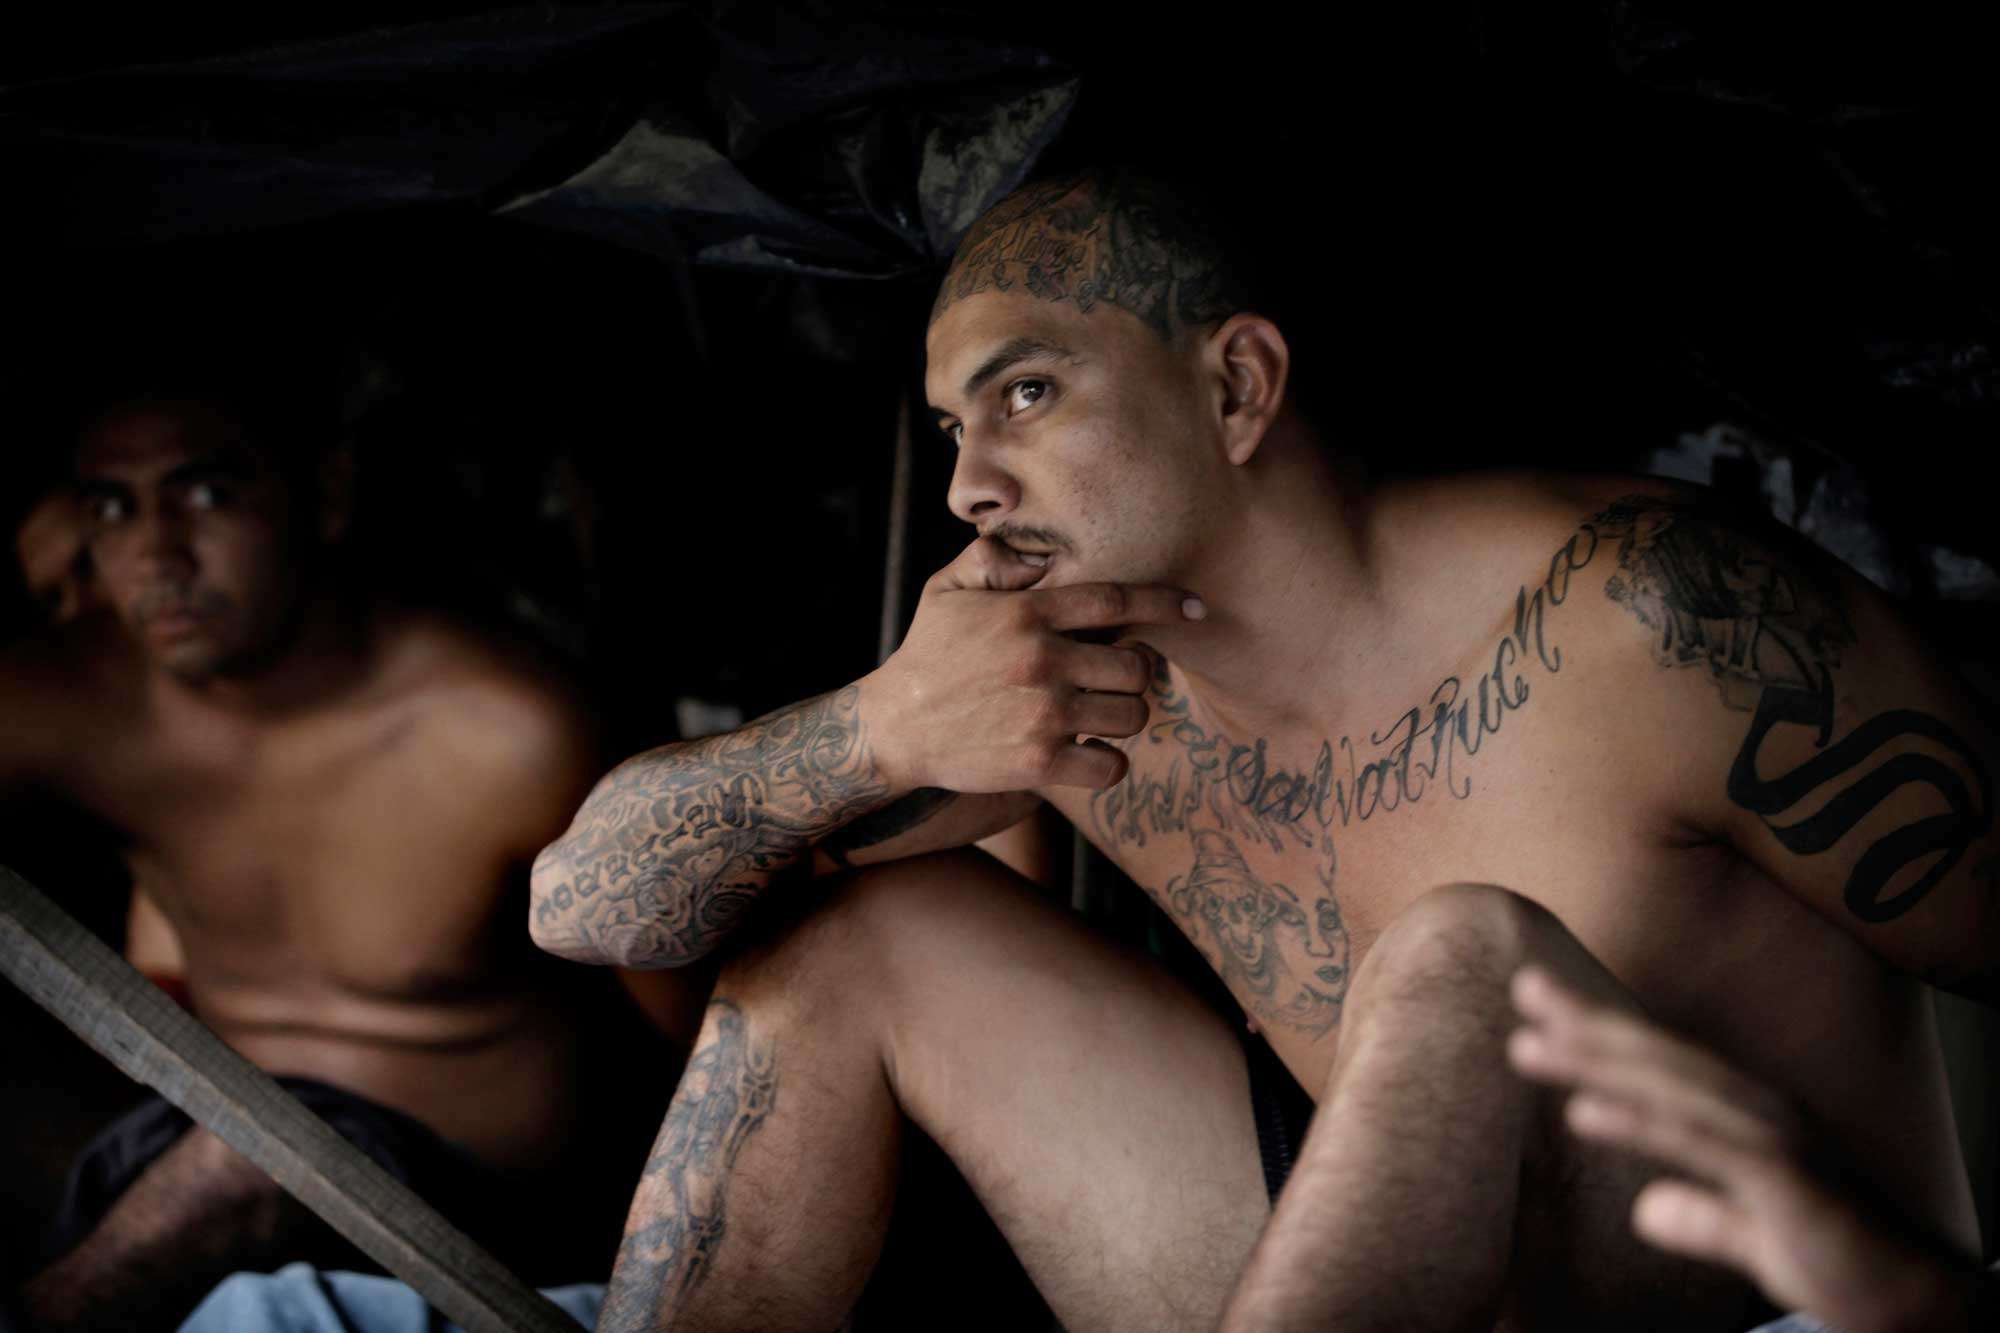 A members of the Mara Salvatrucha, or MS13, a transnational criminal gang which originated on the streets of Los Angeles along with its main rival, the Barrio 18 gang. El Salvador has seen escalating crime rates that is rapidly making the country the deadliest place in the world.